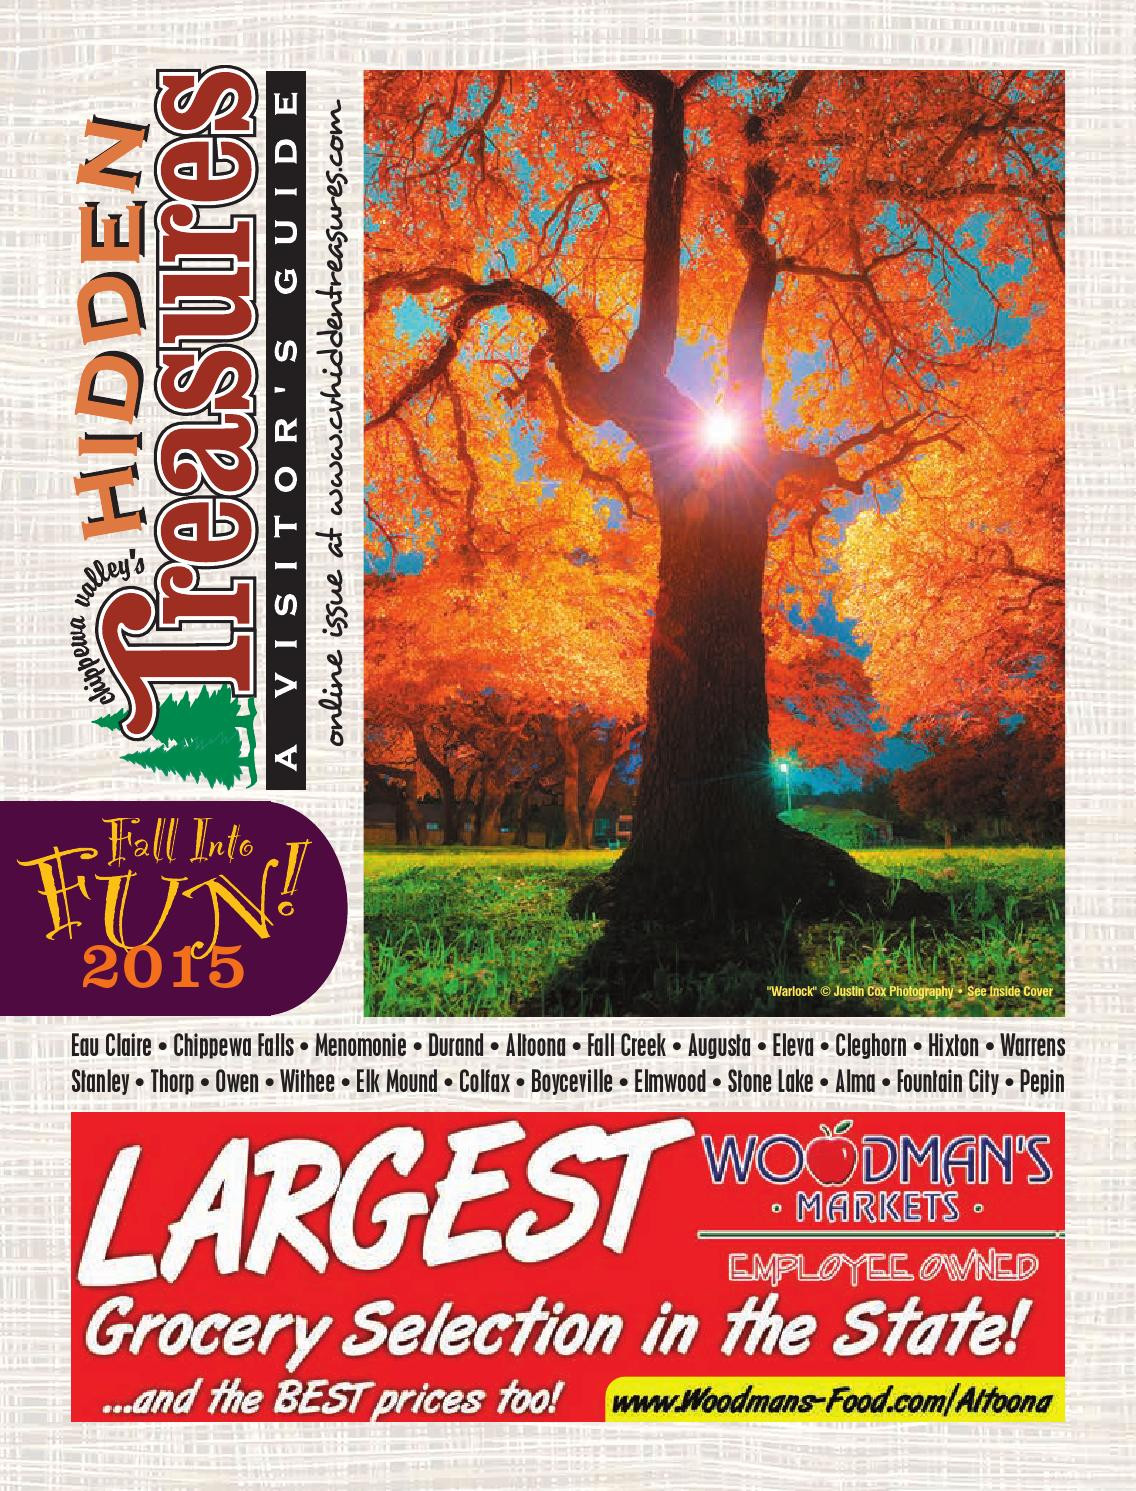 Owens Hardwood Flooring Distributors Of Chippewa Valleys Hidden Treasures by Evergreen Graphics issuu Inside Page 1